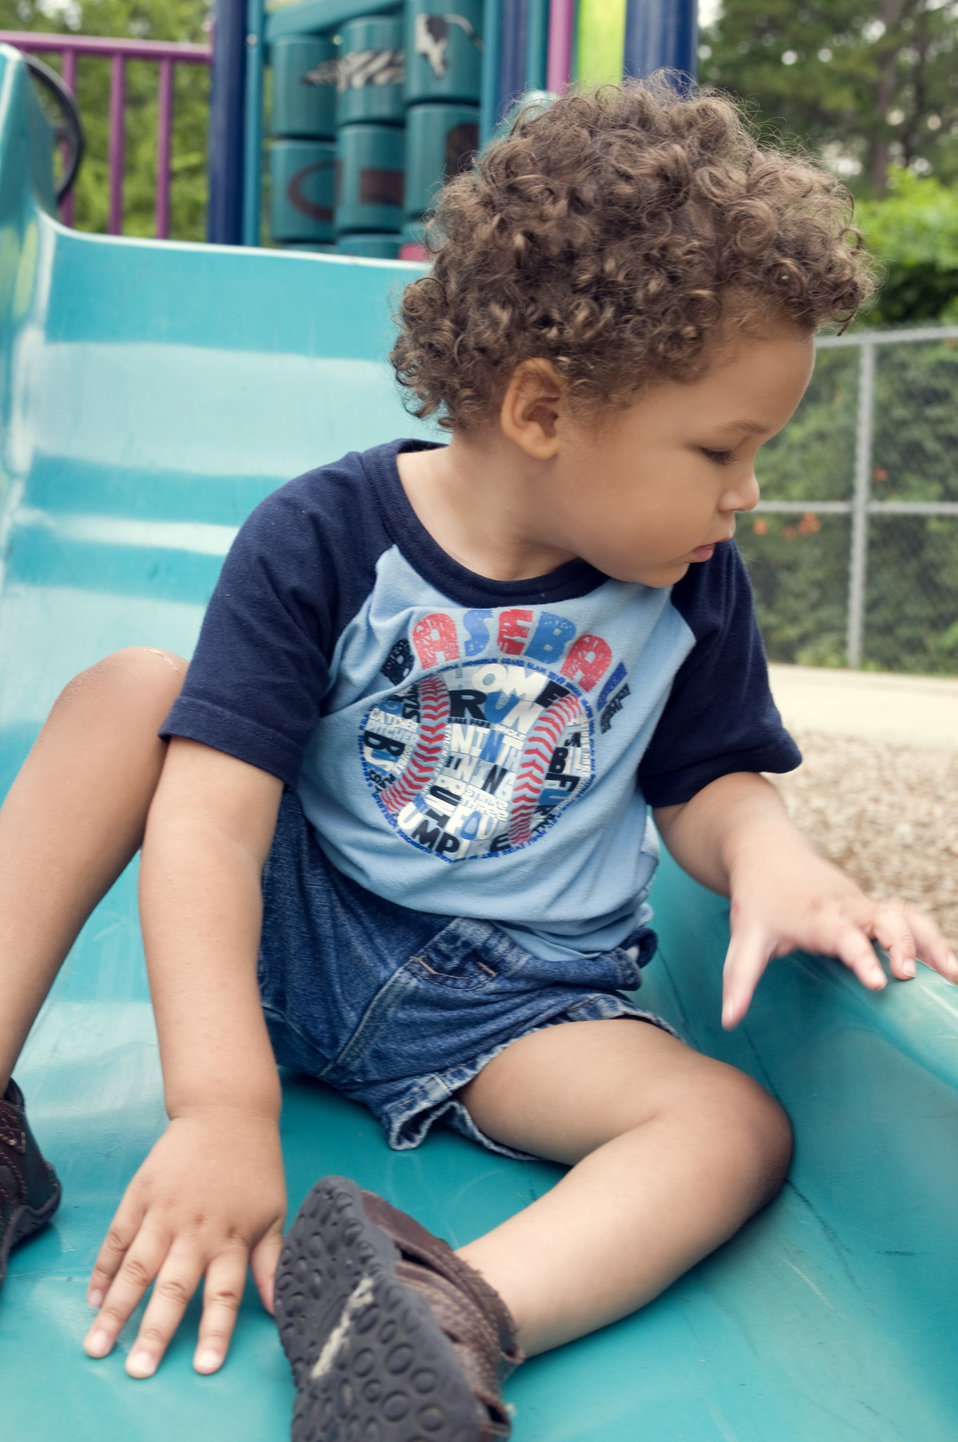 The young boy pictured here was seated on a slide at a community playground, and was wearing a darkly-colored t-shirt and denim shorts, both